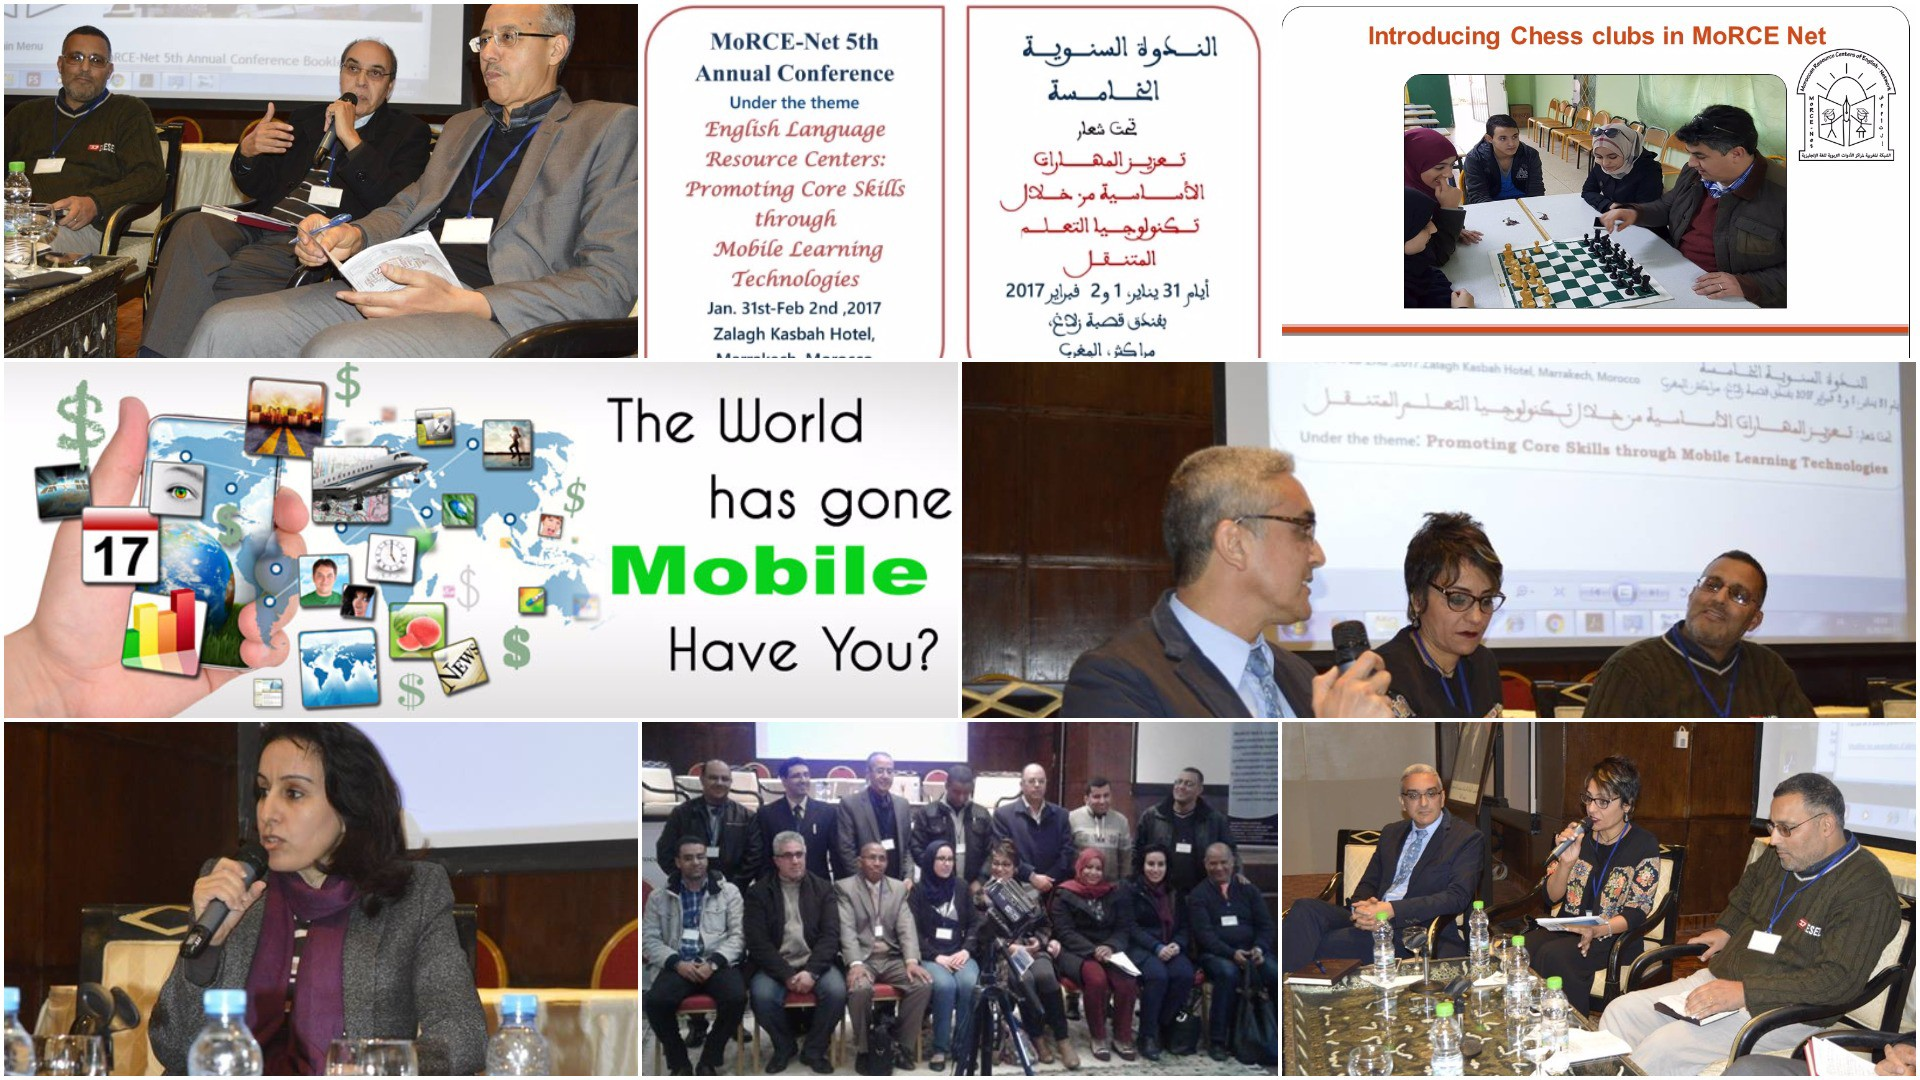 MoRCe-Net 5th Annual Conference Under The Theme English Language Resource Centers: Promoting Core Skills Through Mobile Learning Tech